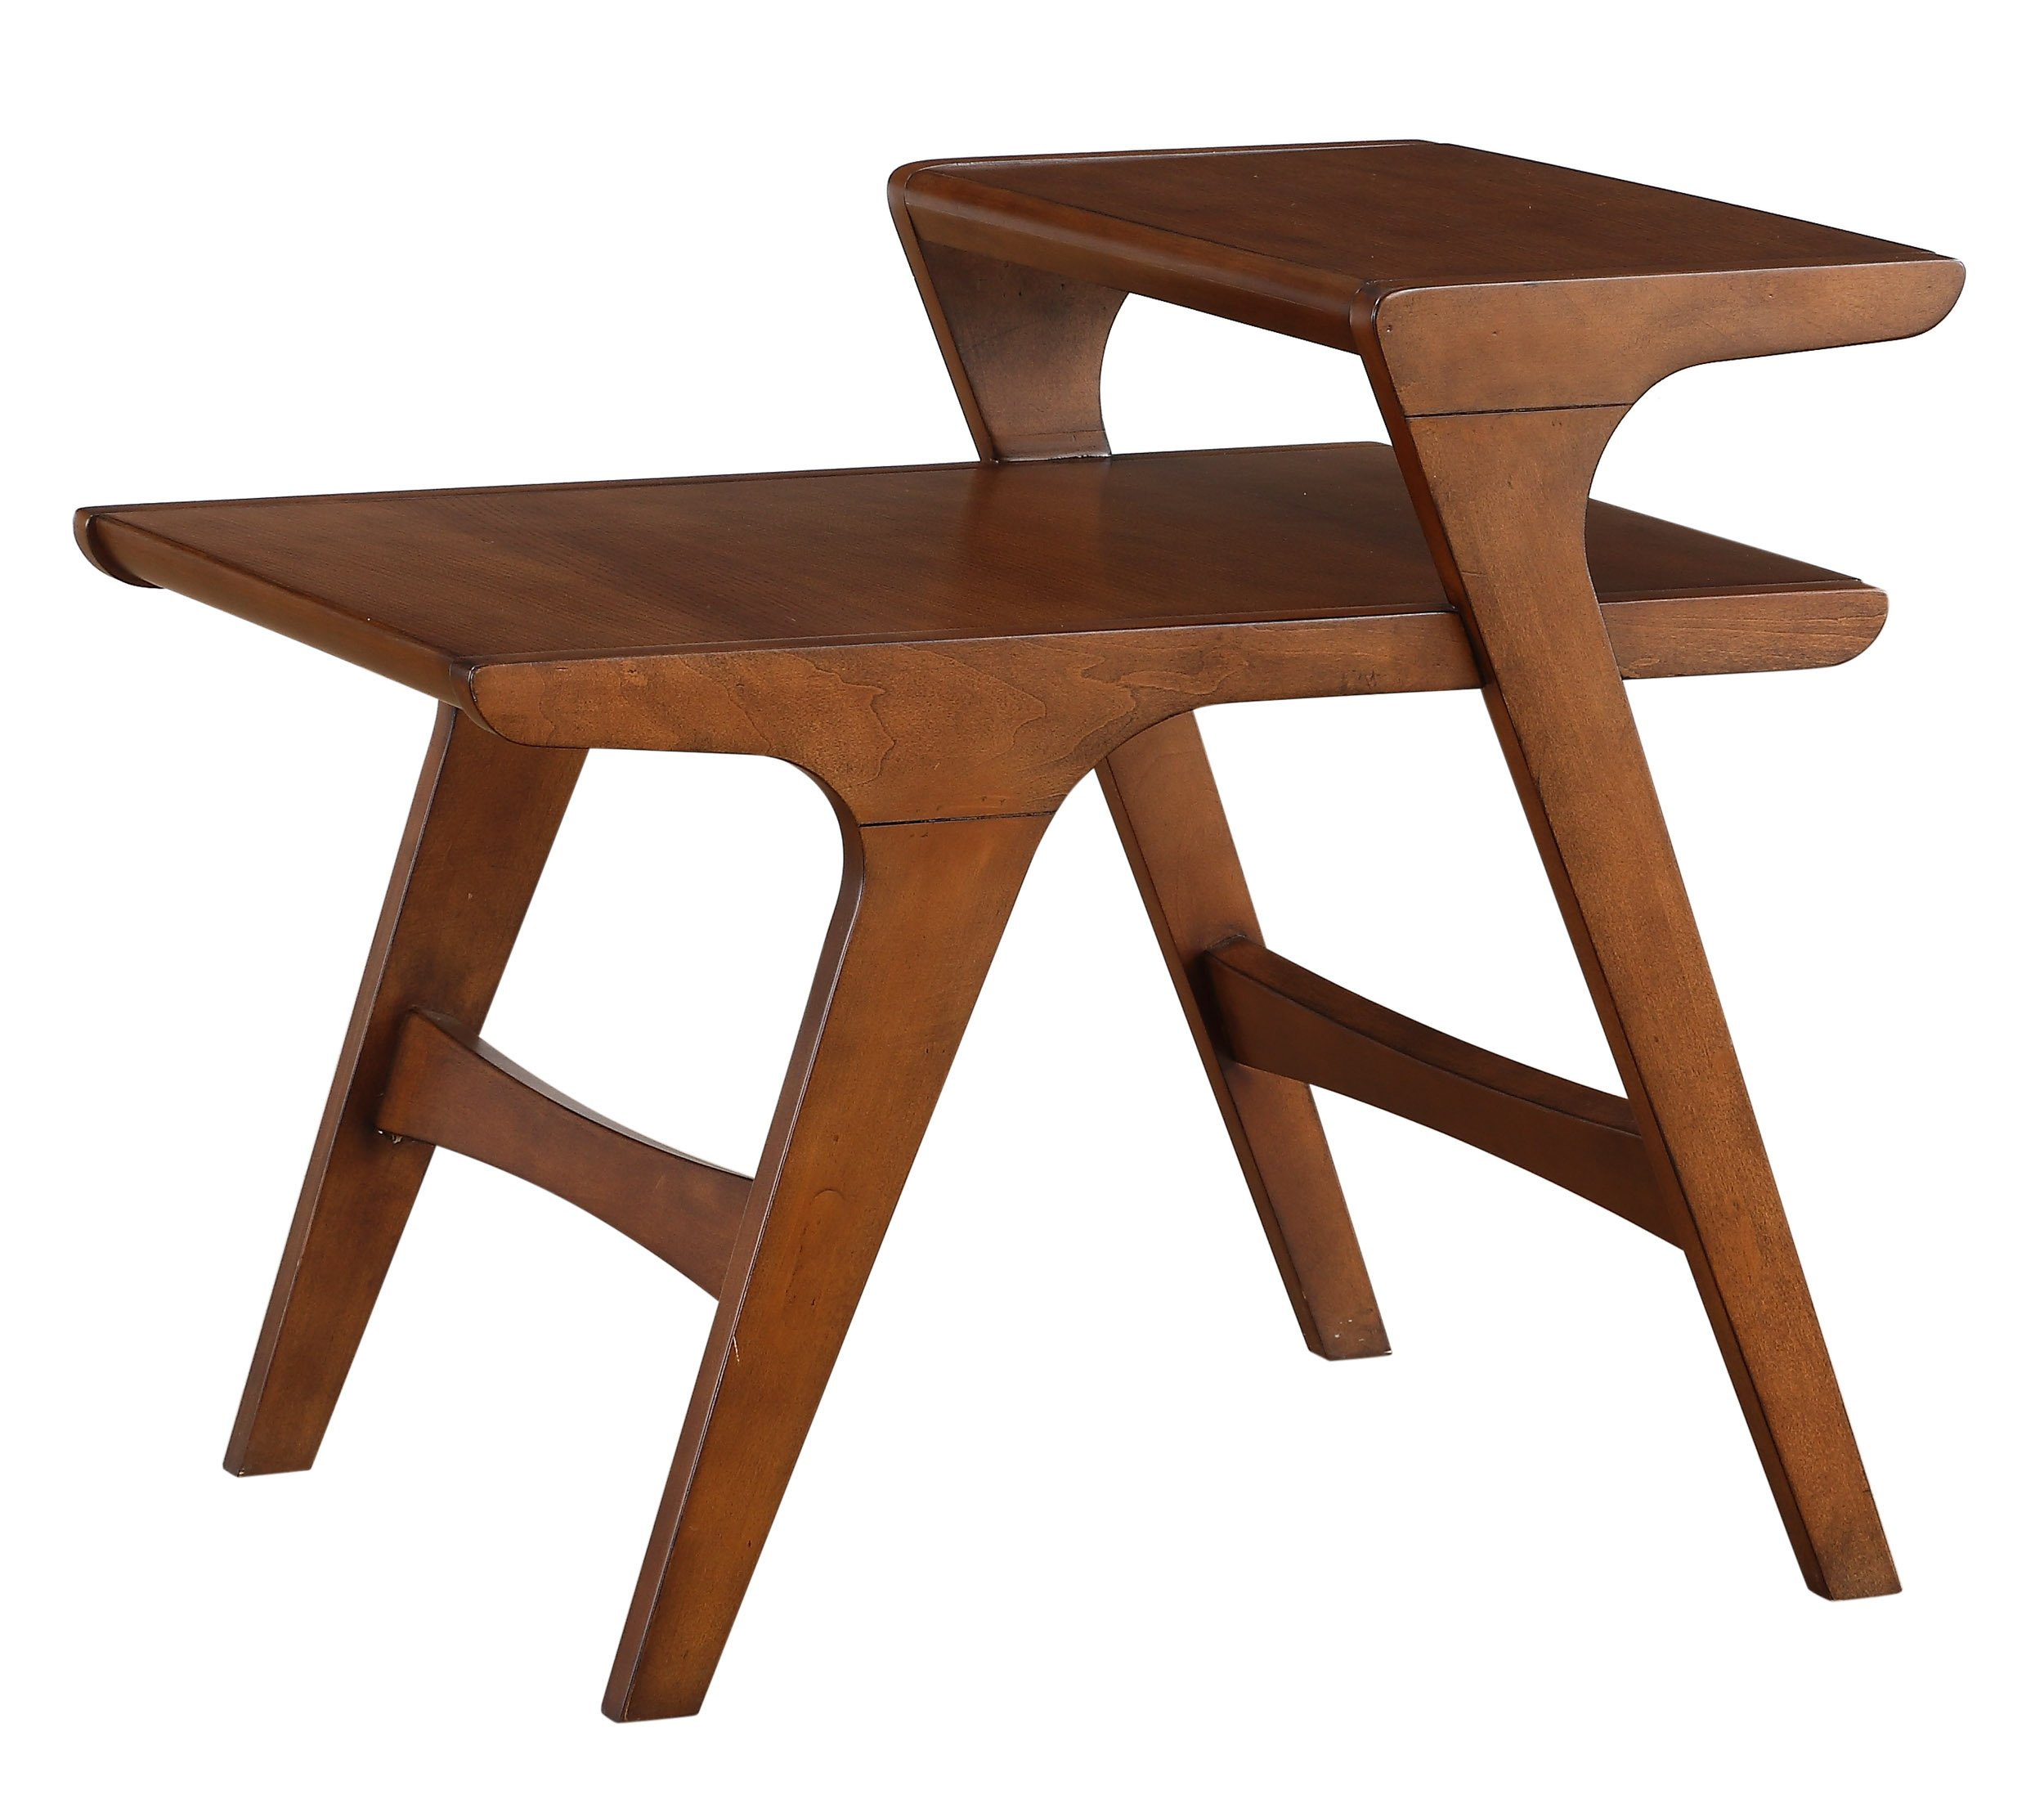 Homelegance Saluki Mid-Century Two-Tier End Table, Cherry by Homelegance